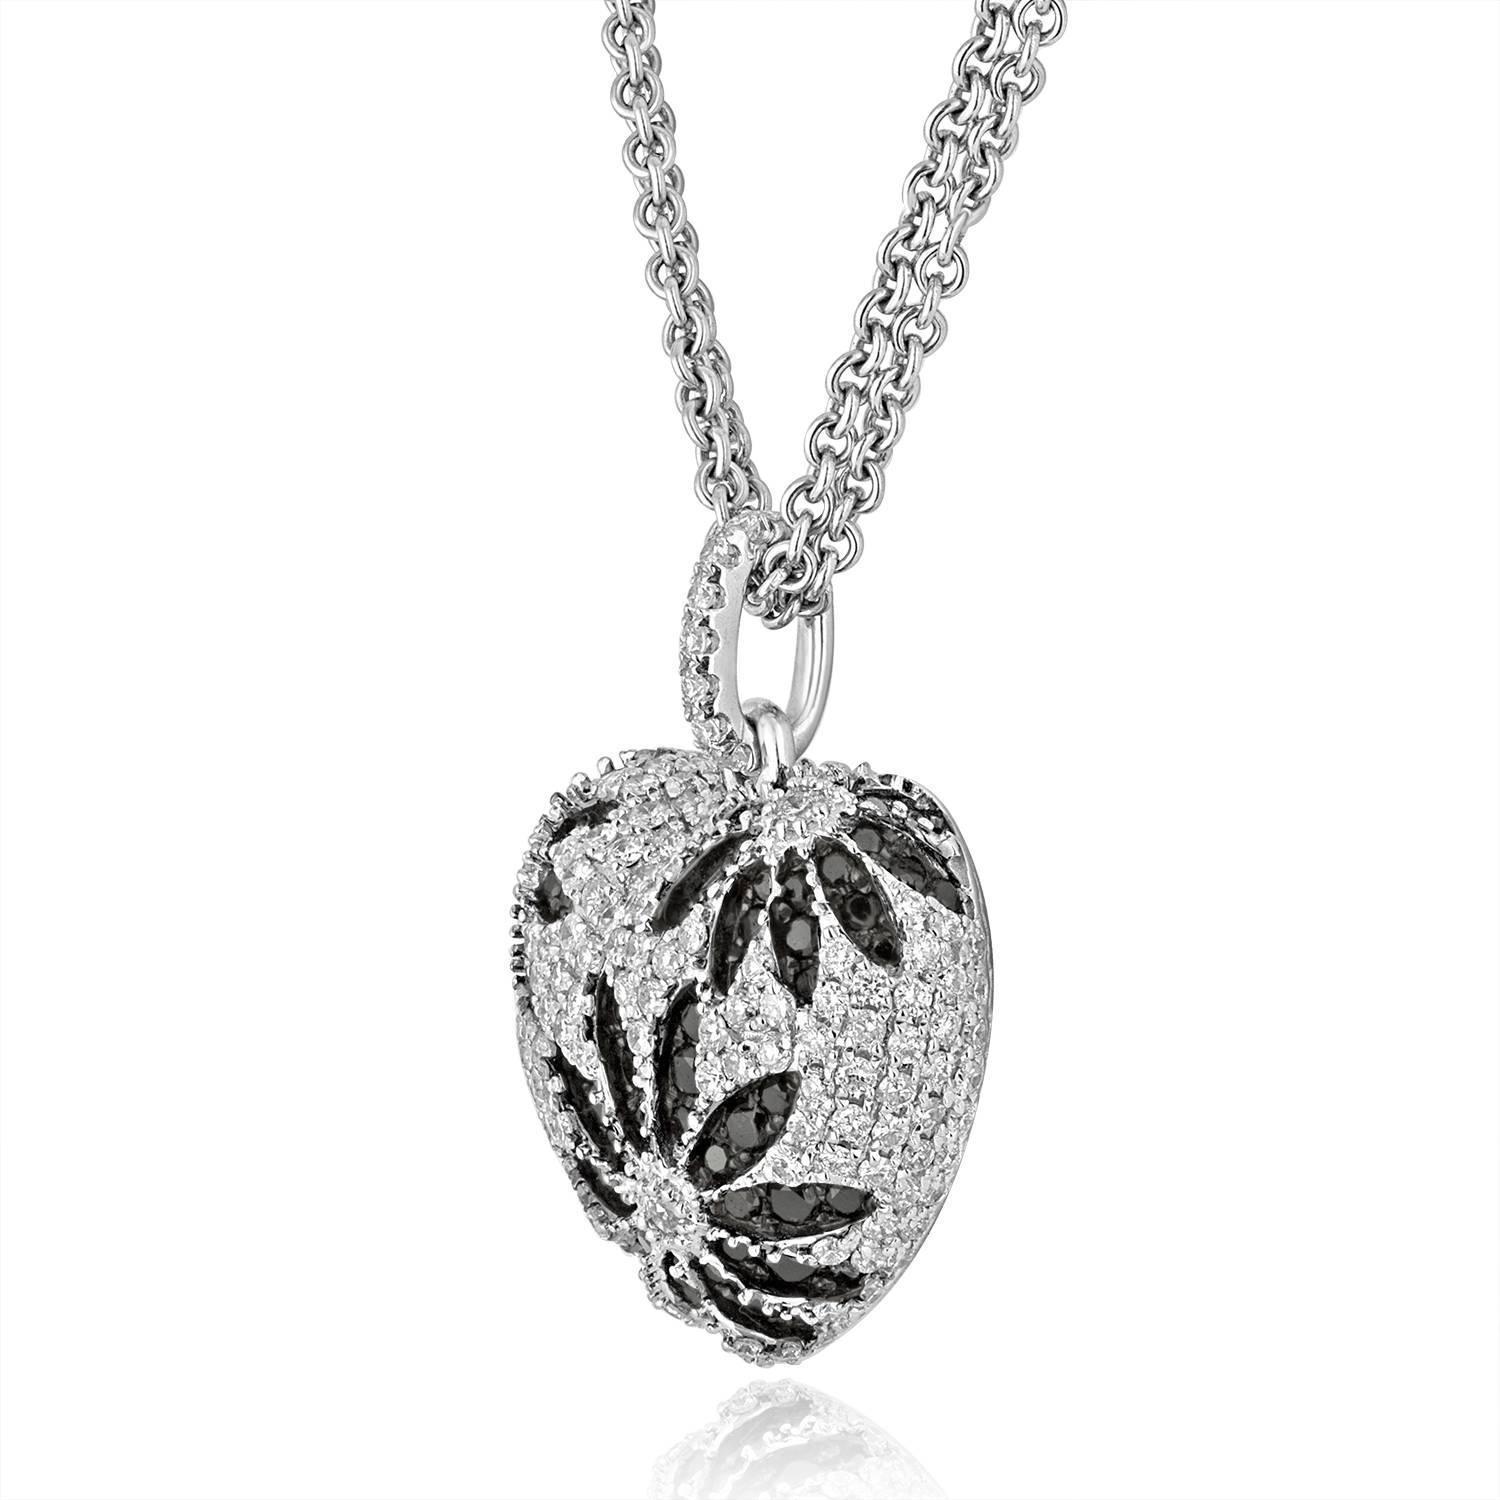 Black and White Diamond Gold Heart Pendant Necklace For Sale at 1stdibs